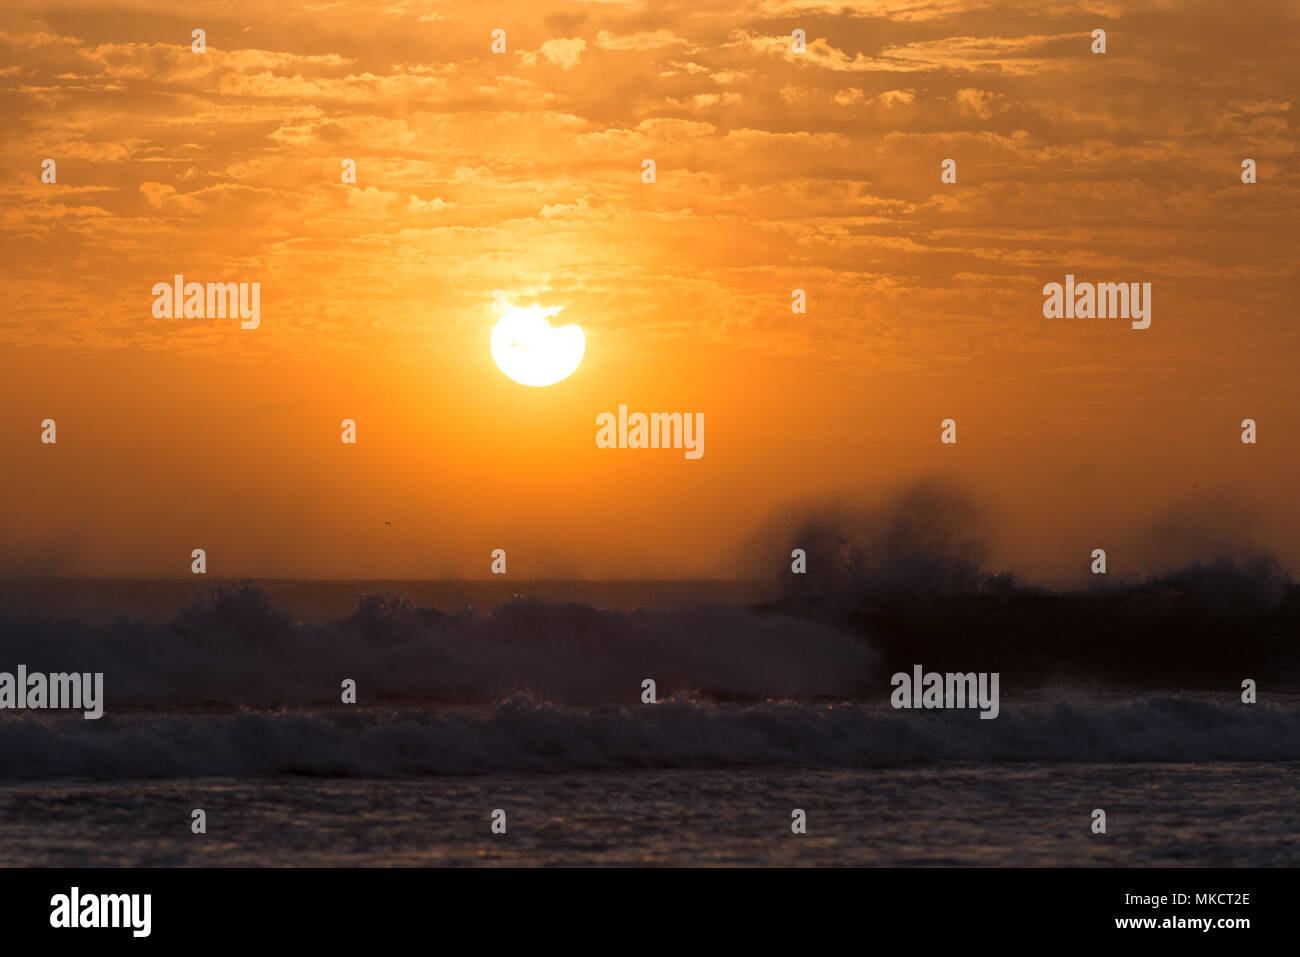 Wave splashing with the sun low over the horizon on the shore of a beach in the south of Spain. - Stock Image